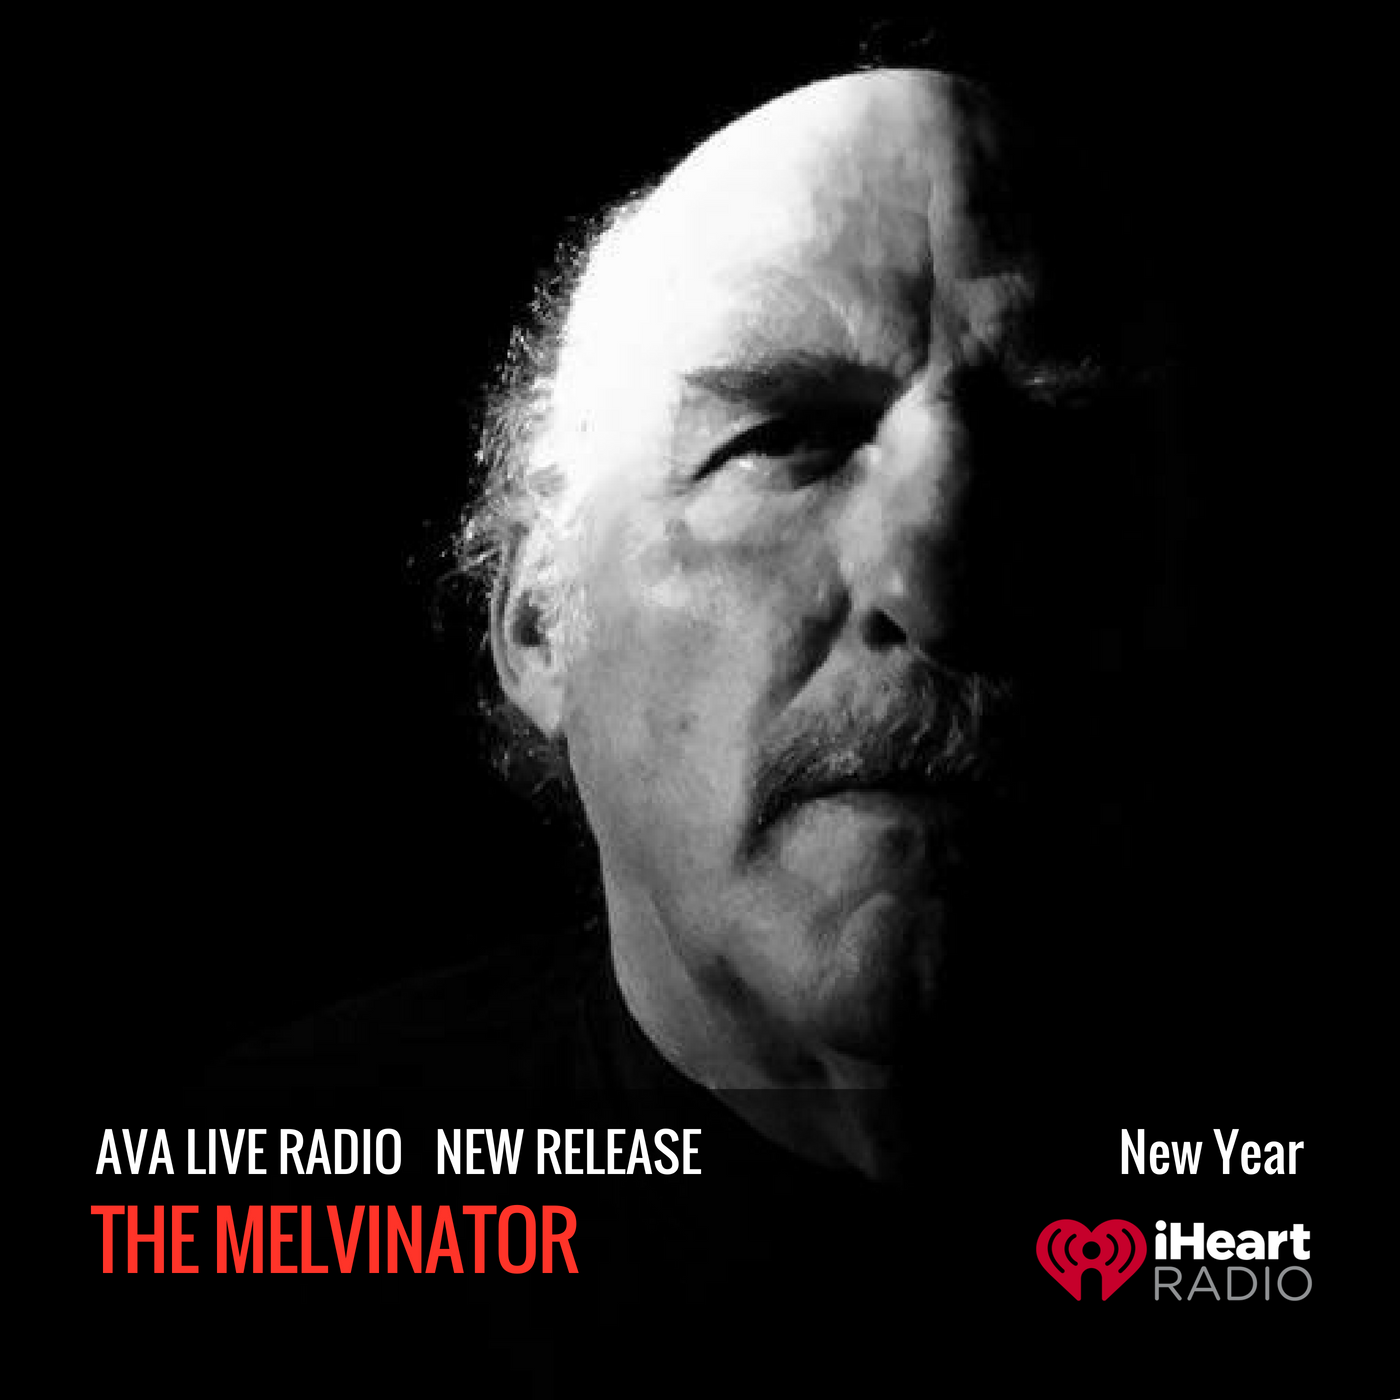 New Single from The Melvinator 'New Year'